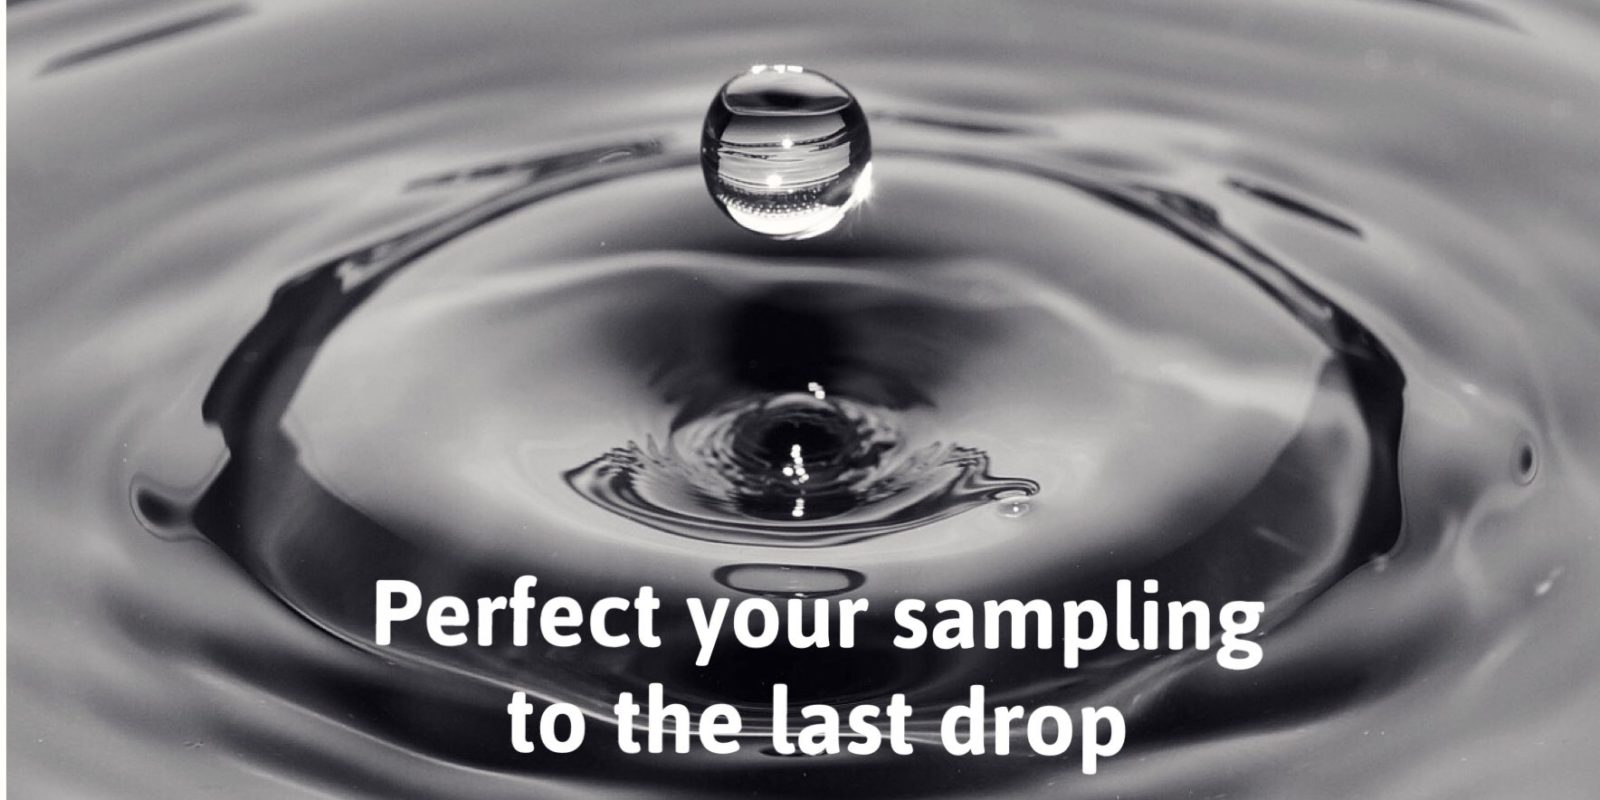 How to take the perfect oil sample? Lube oil sampling best practices.